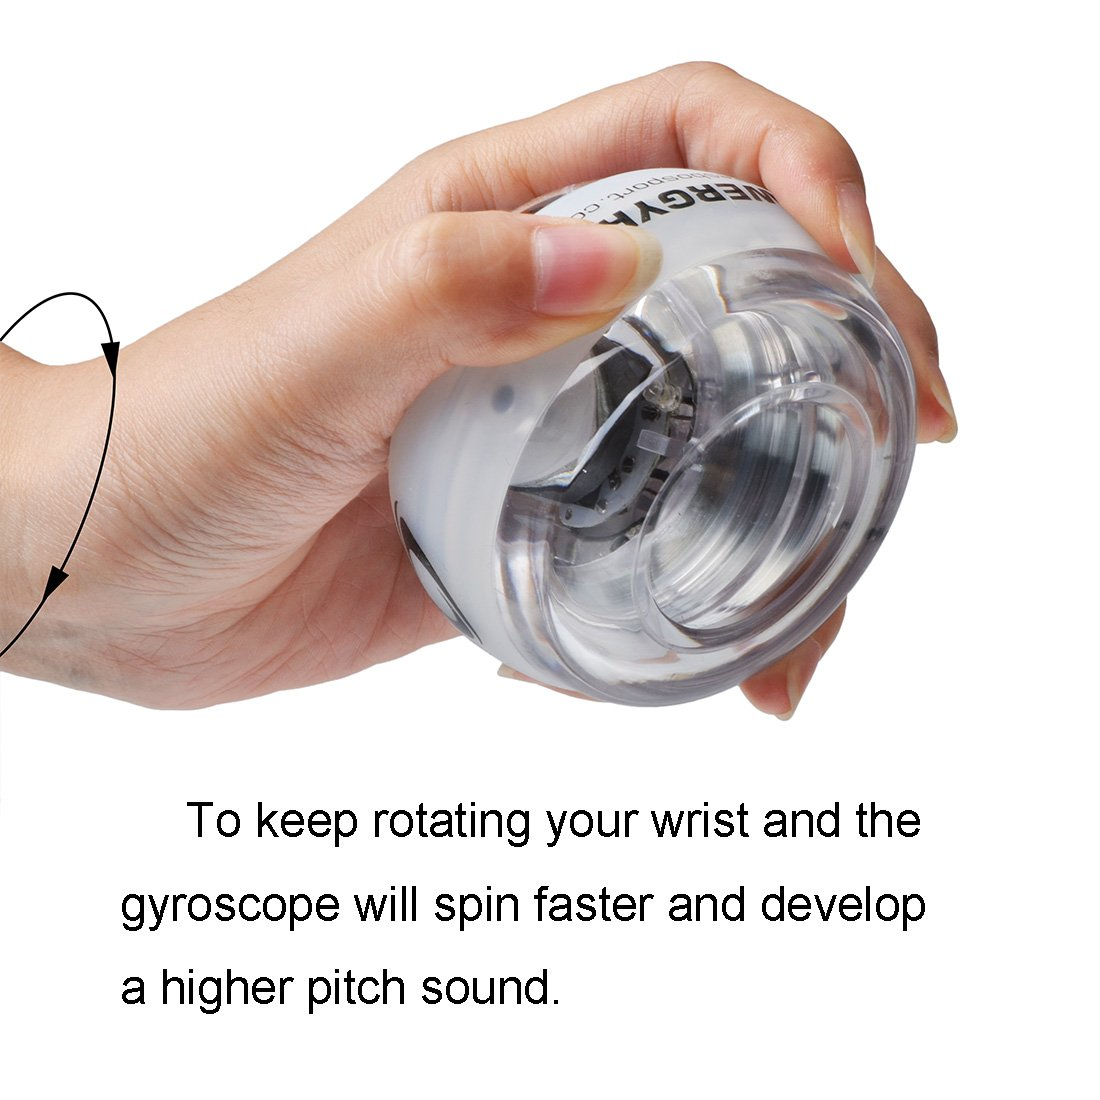 RESBO Wrist Trainer Ball Exerciser Hand Spinner Gyroscopic Ball Metal Type Gyro Ball with LED Light by RESBO SPORT (Image #4)